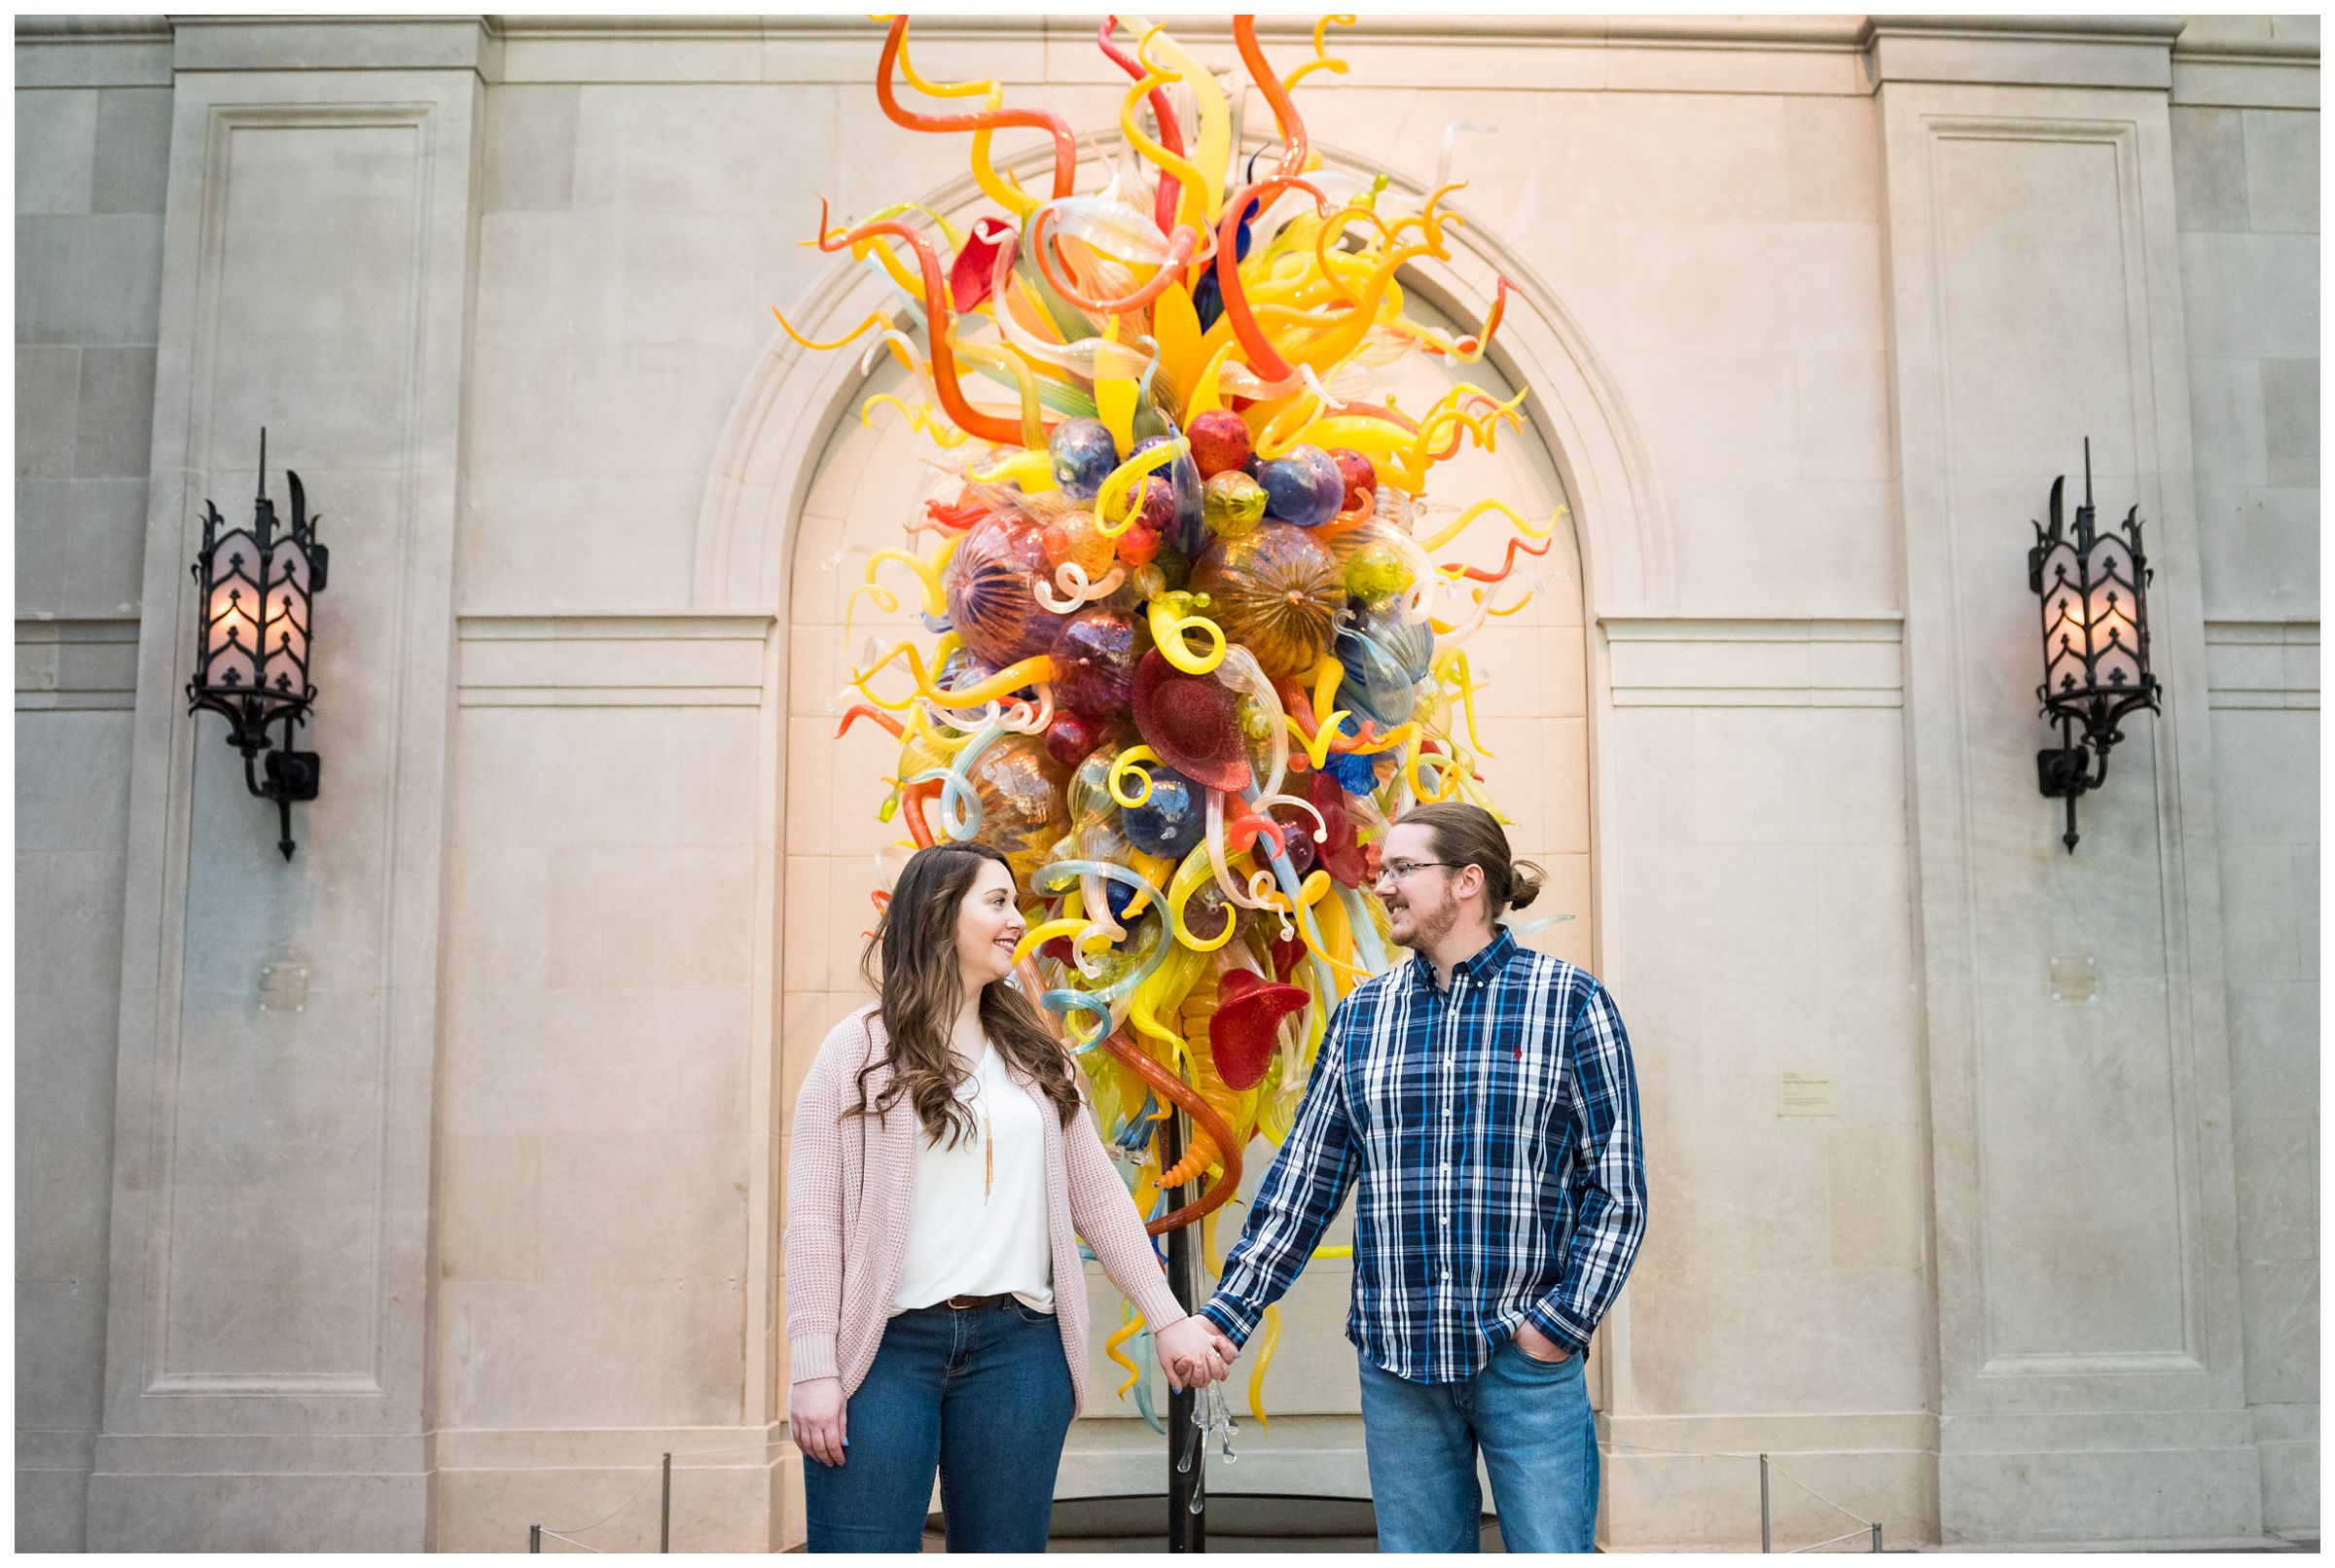 Engaged couple holding hands in front of a Chihuly glass sculpture at the Columbus Museum of Art in Ohio